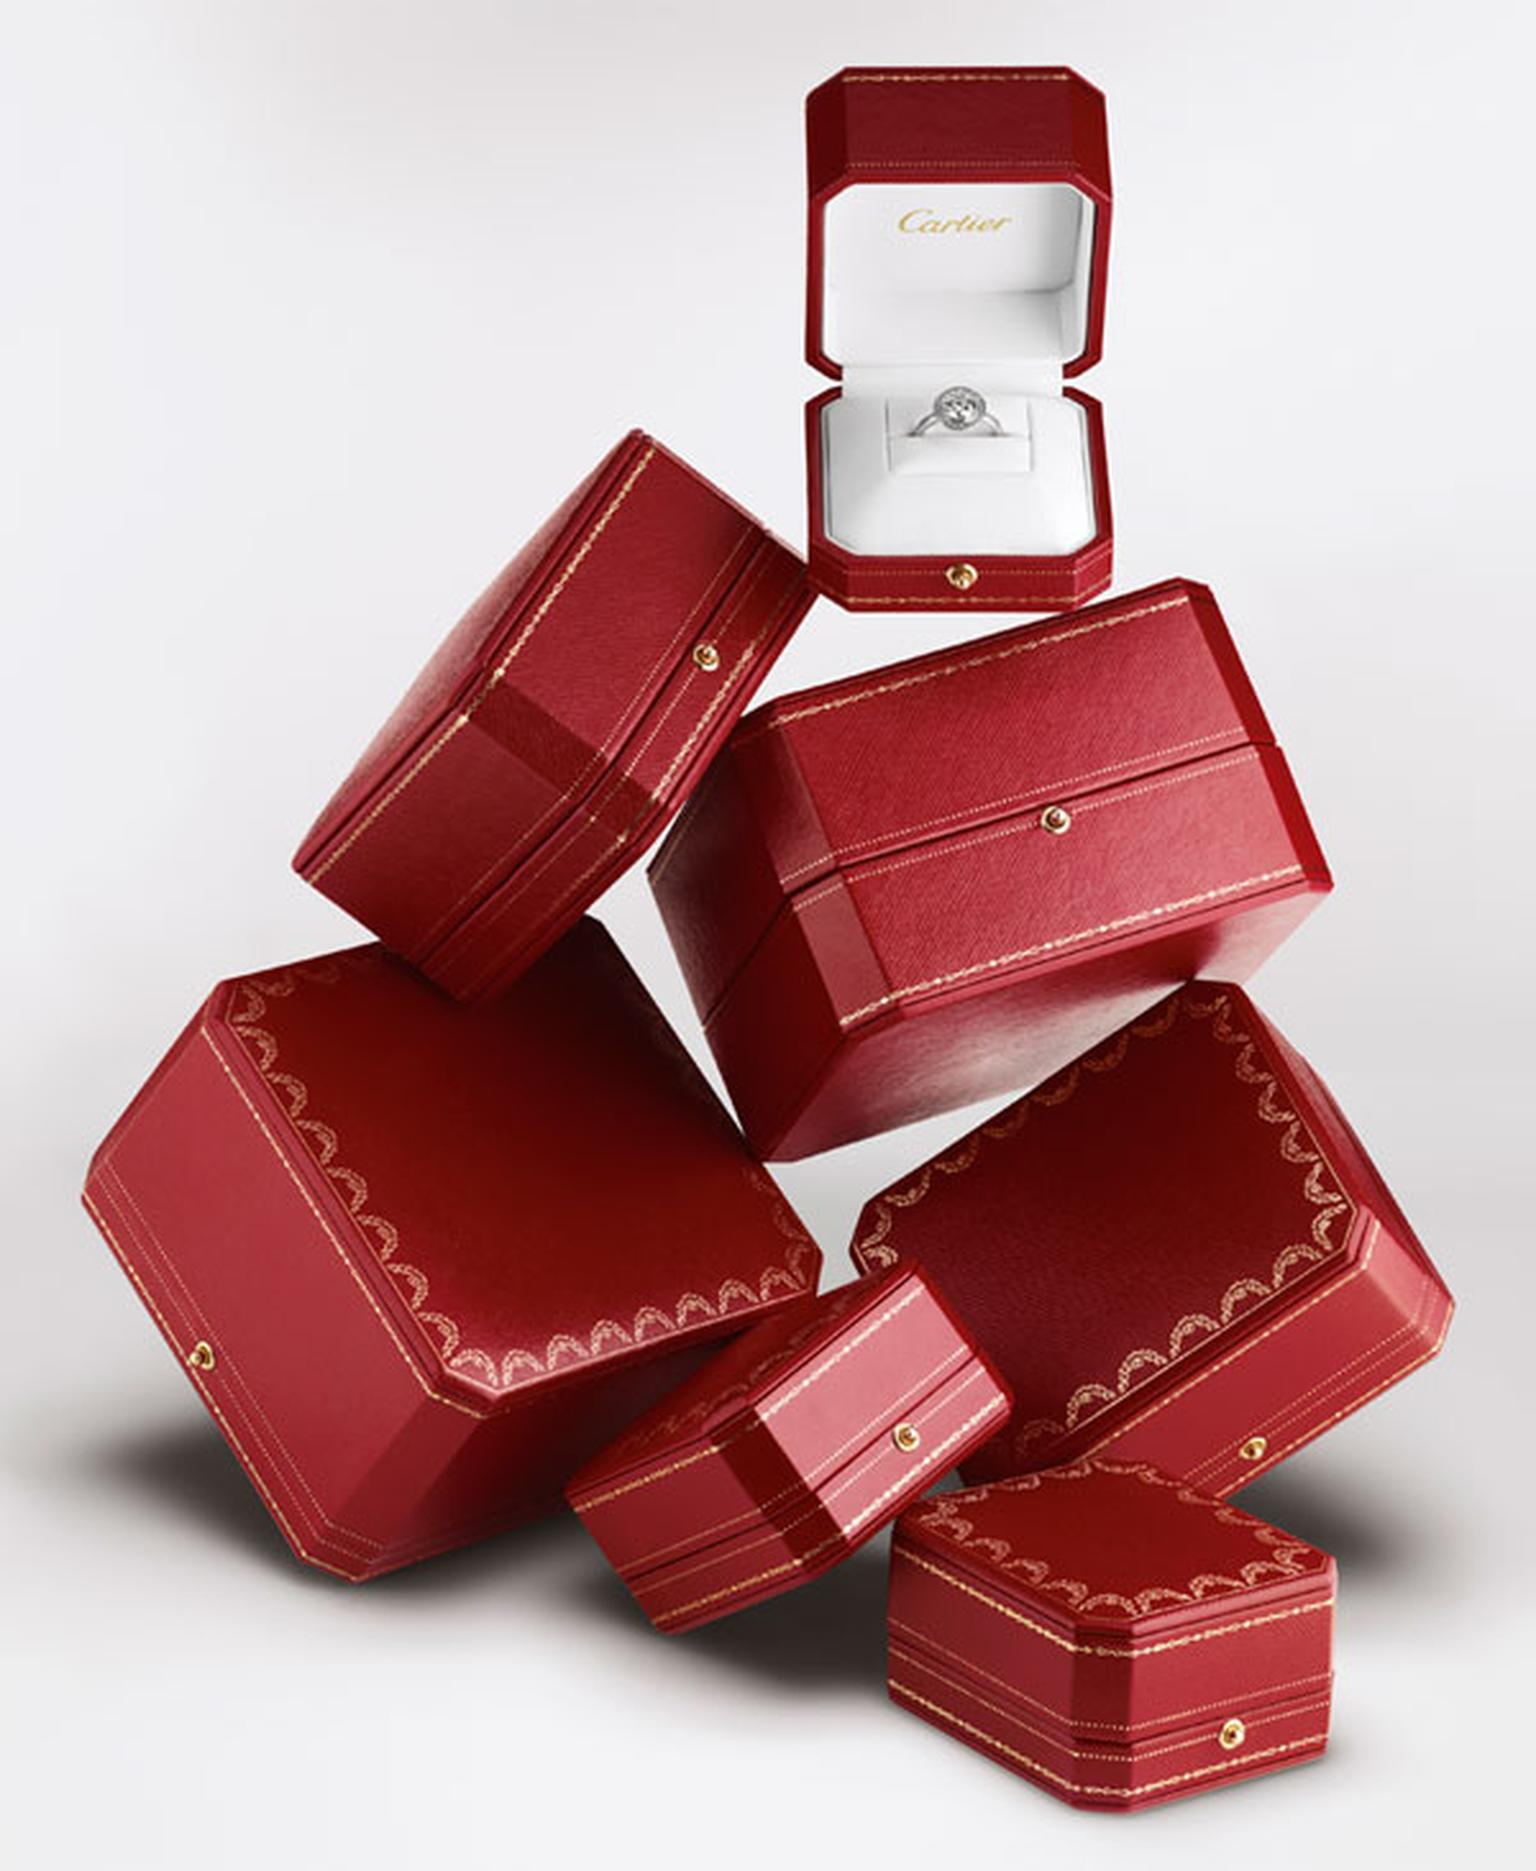 cartier-boxes-and-cartier-d_amour-solitaire.jpg__1536x0_q75_crop-scale_subsampling-2_upscale-false